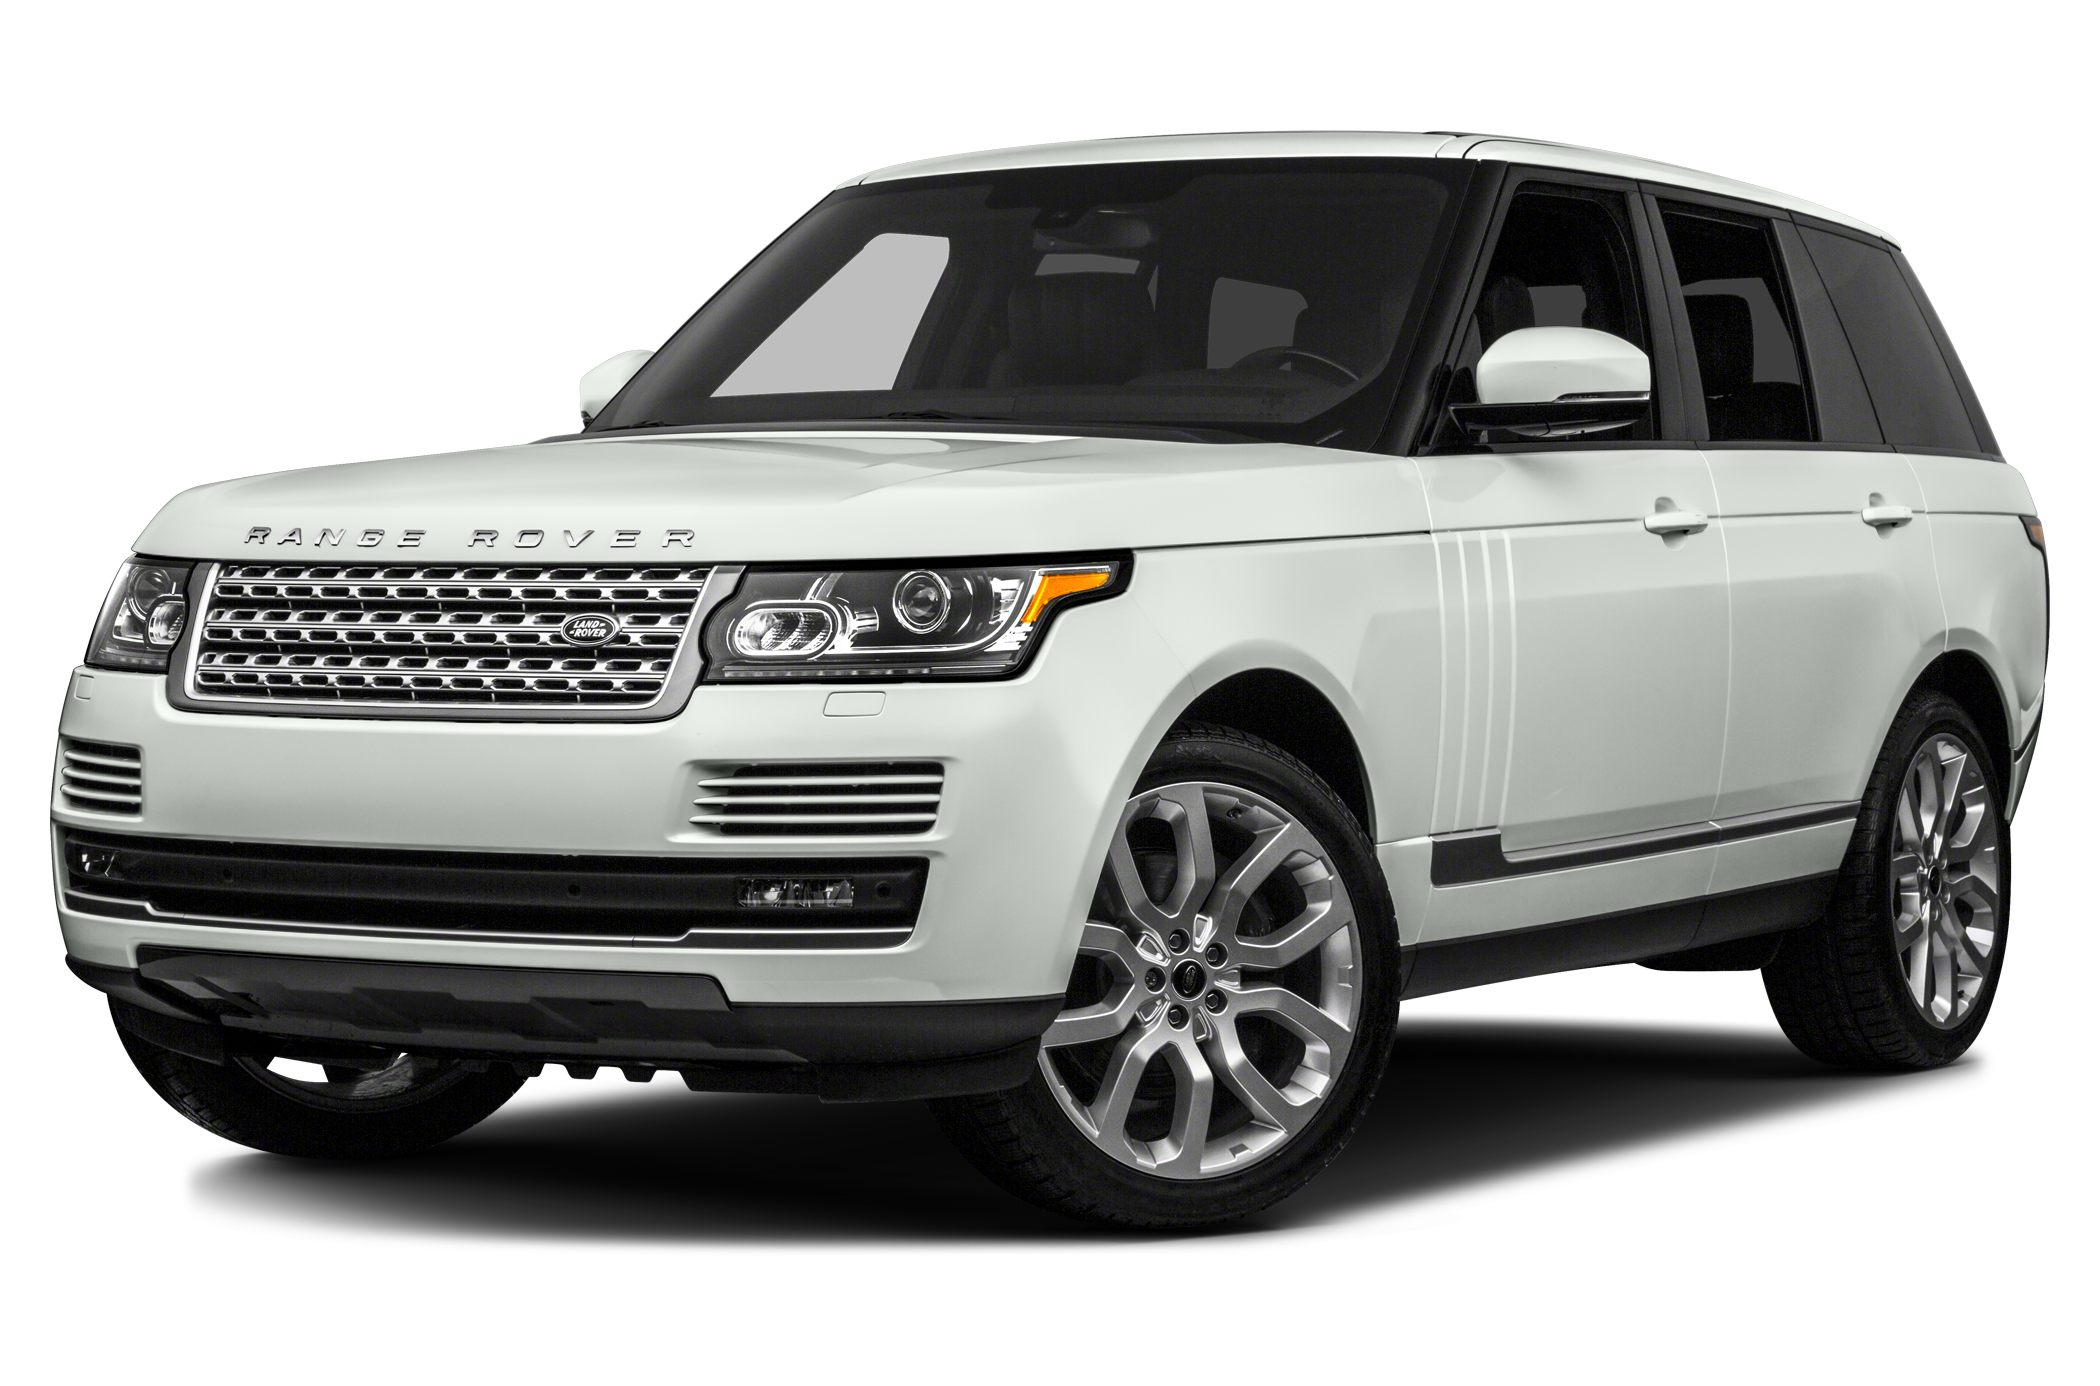 2013 Land Rover Range Rover